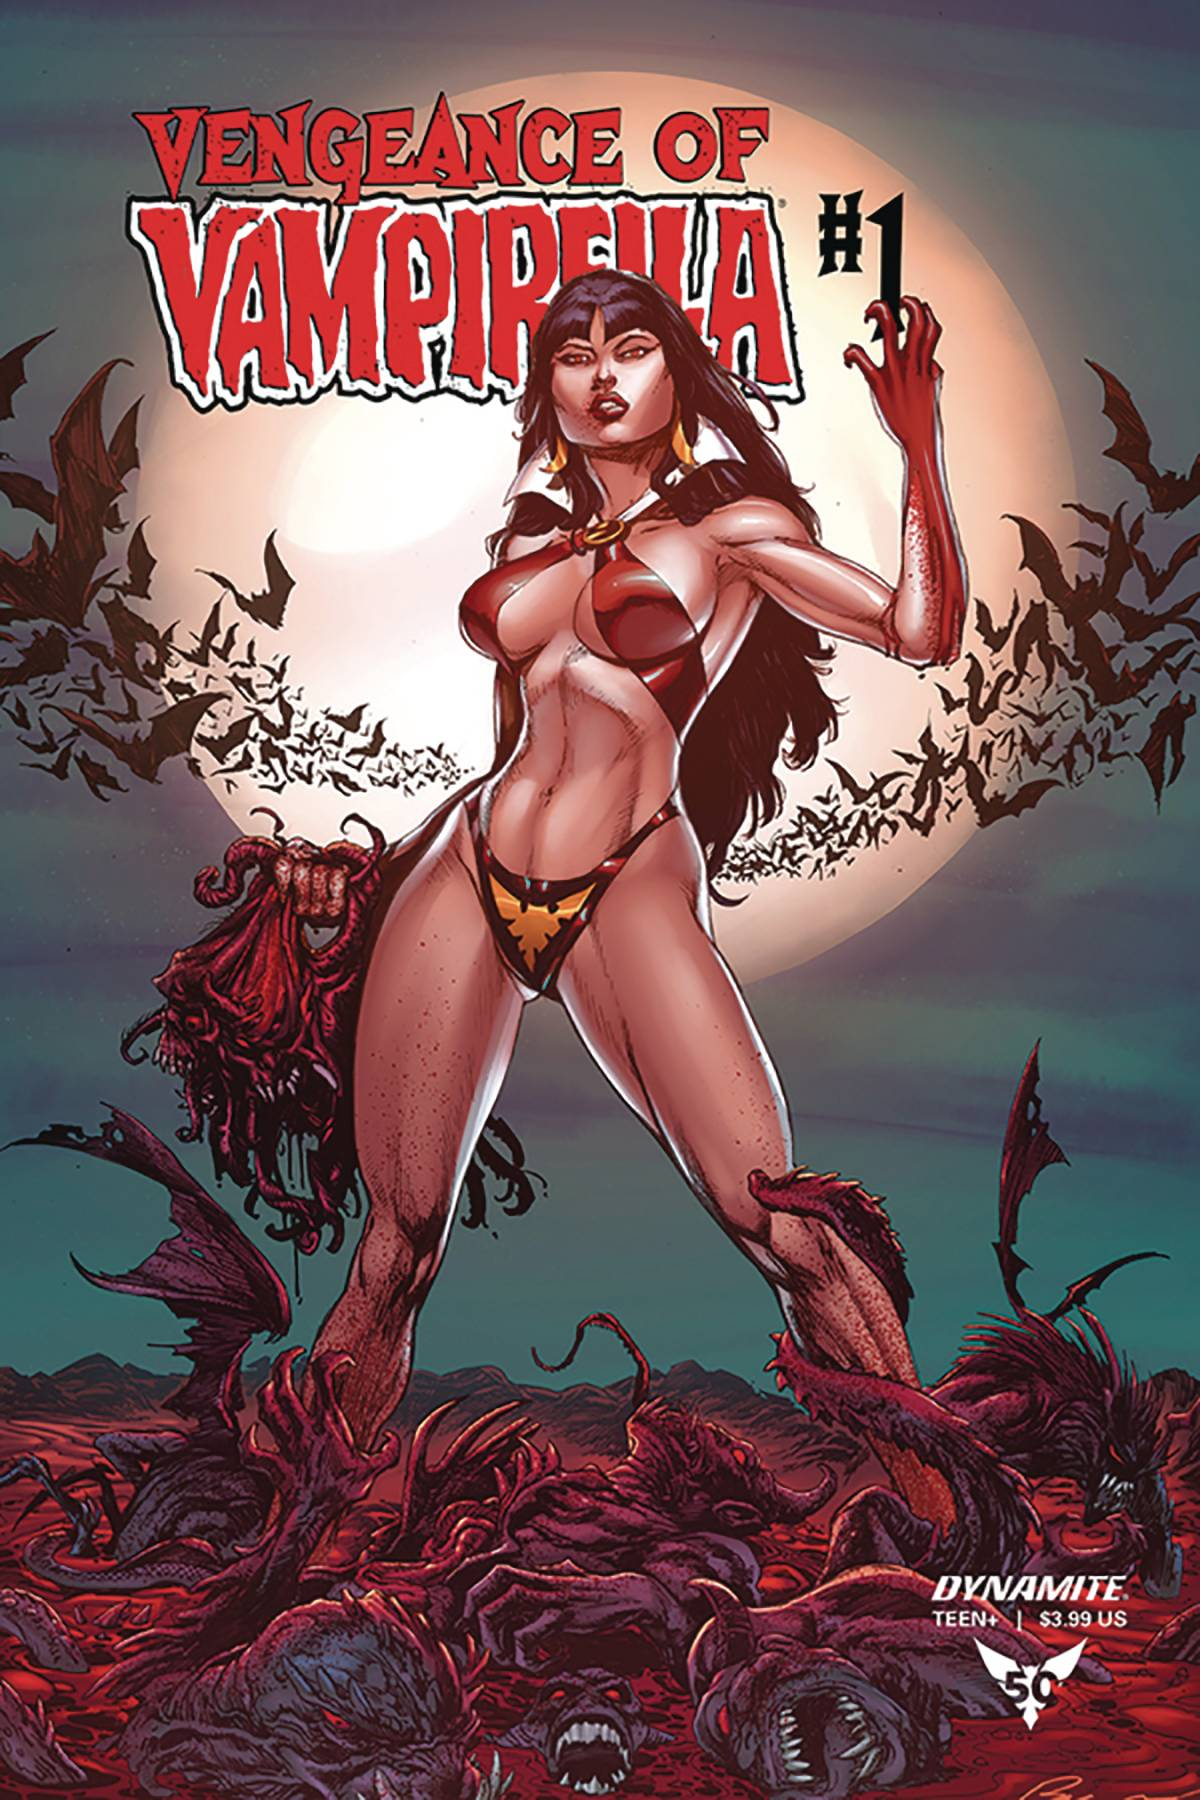 VENGEANCE OF VAMPIRELLA 1 10 COPY BUZZ INCV.jpg